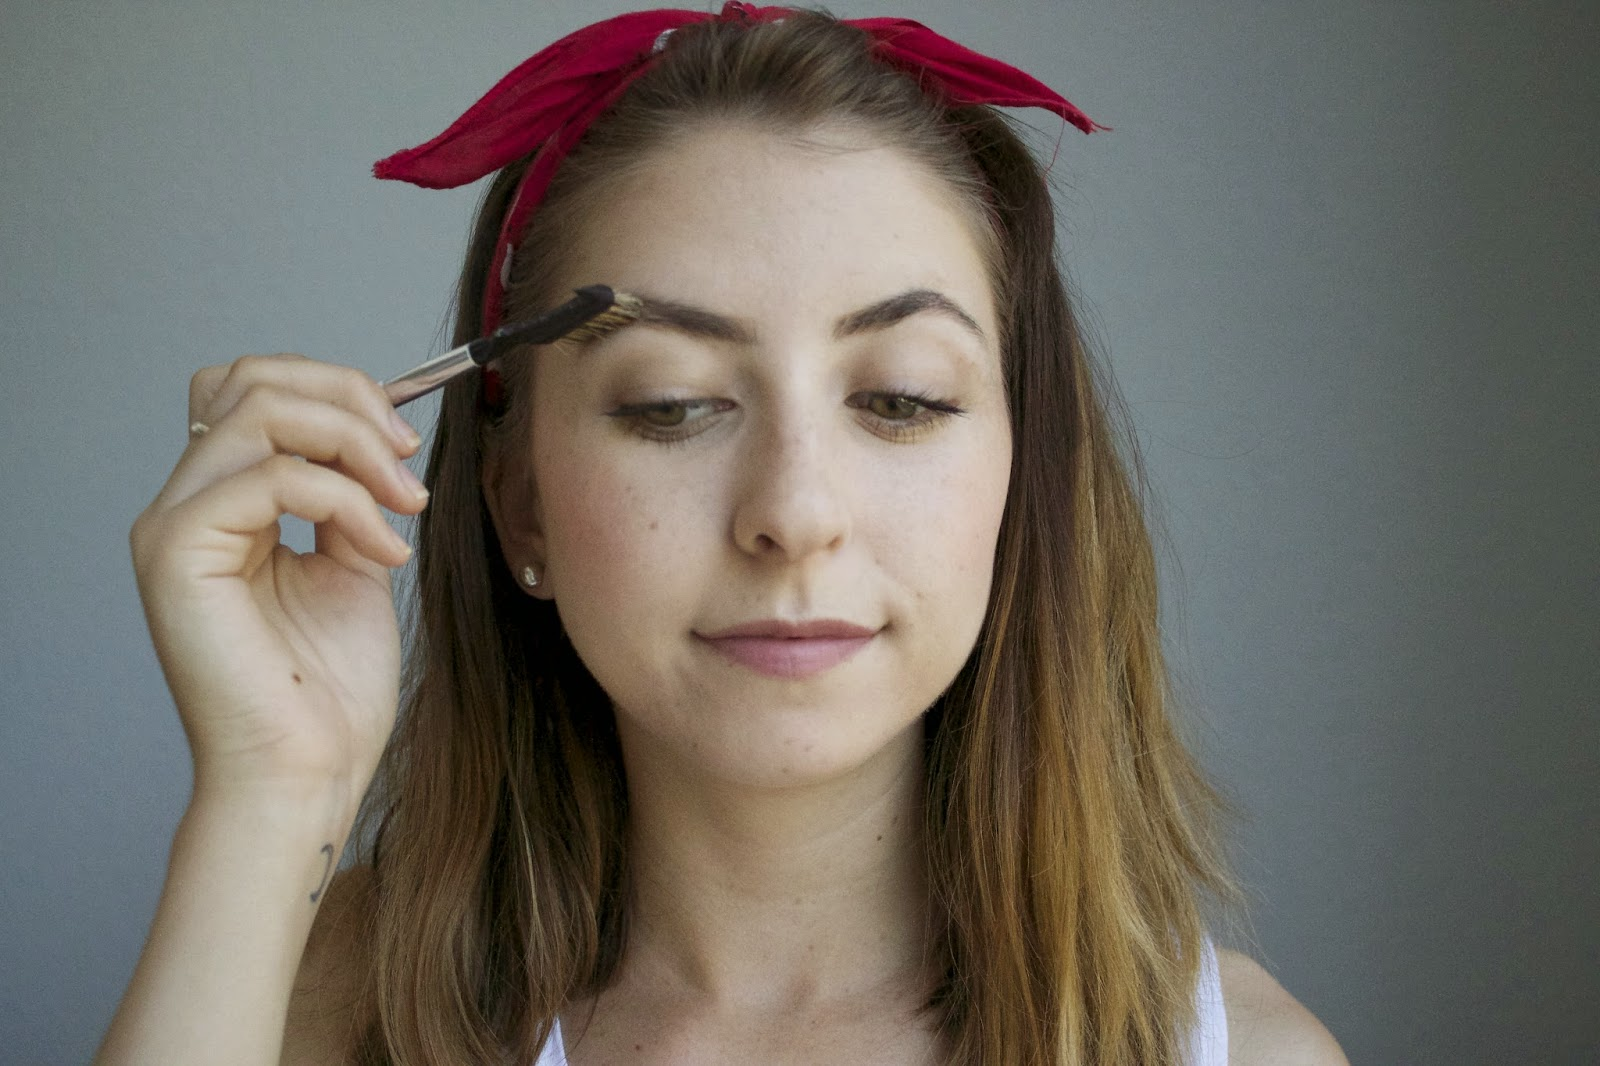 how to make my eyebrows look nice